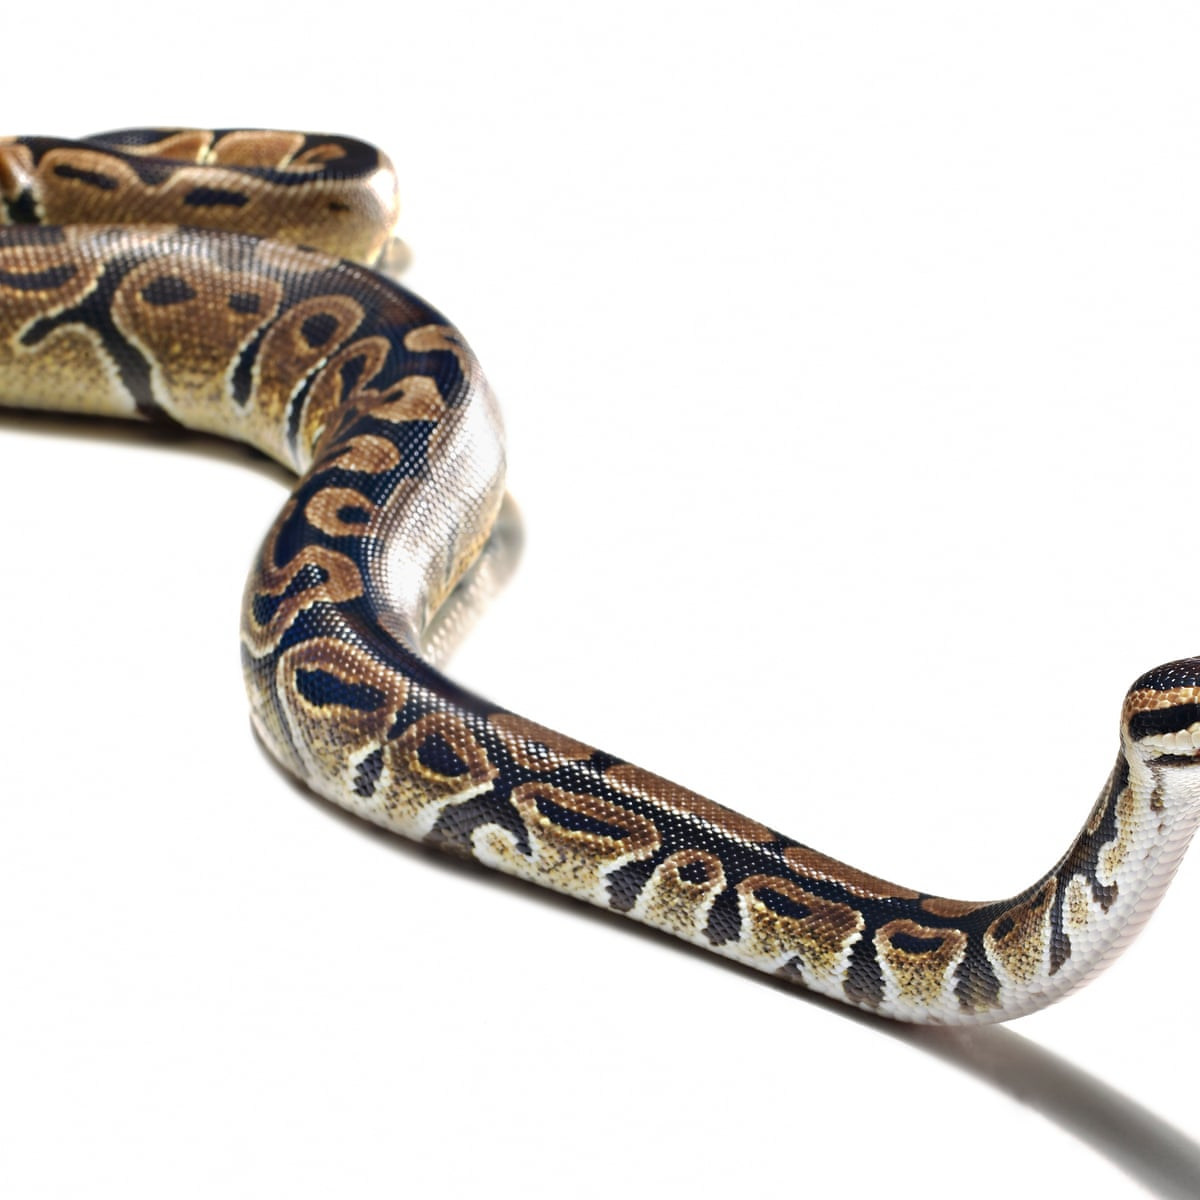 Who Let The Snakes Out And What Should You Do If You Find One In Your Bed Life And Style The Guardian